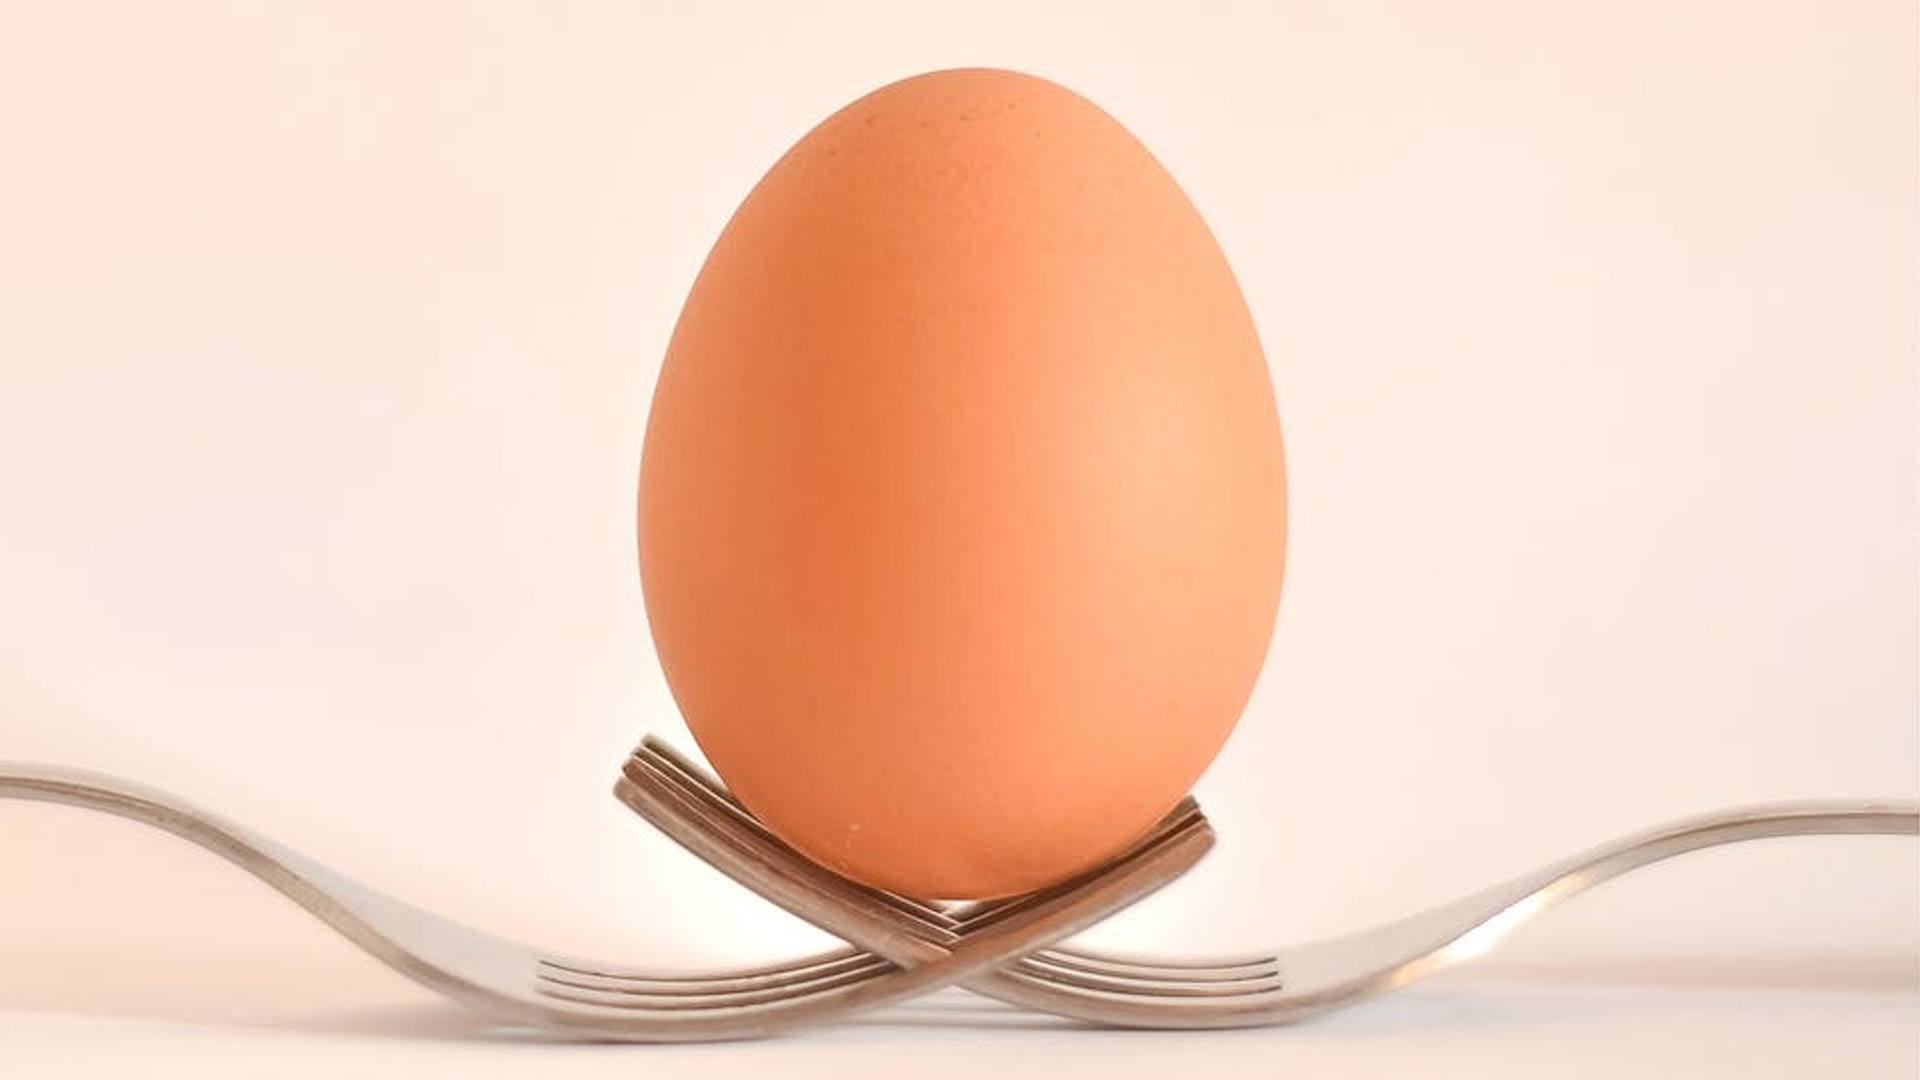 An egg on two forks